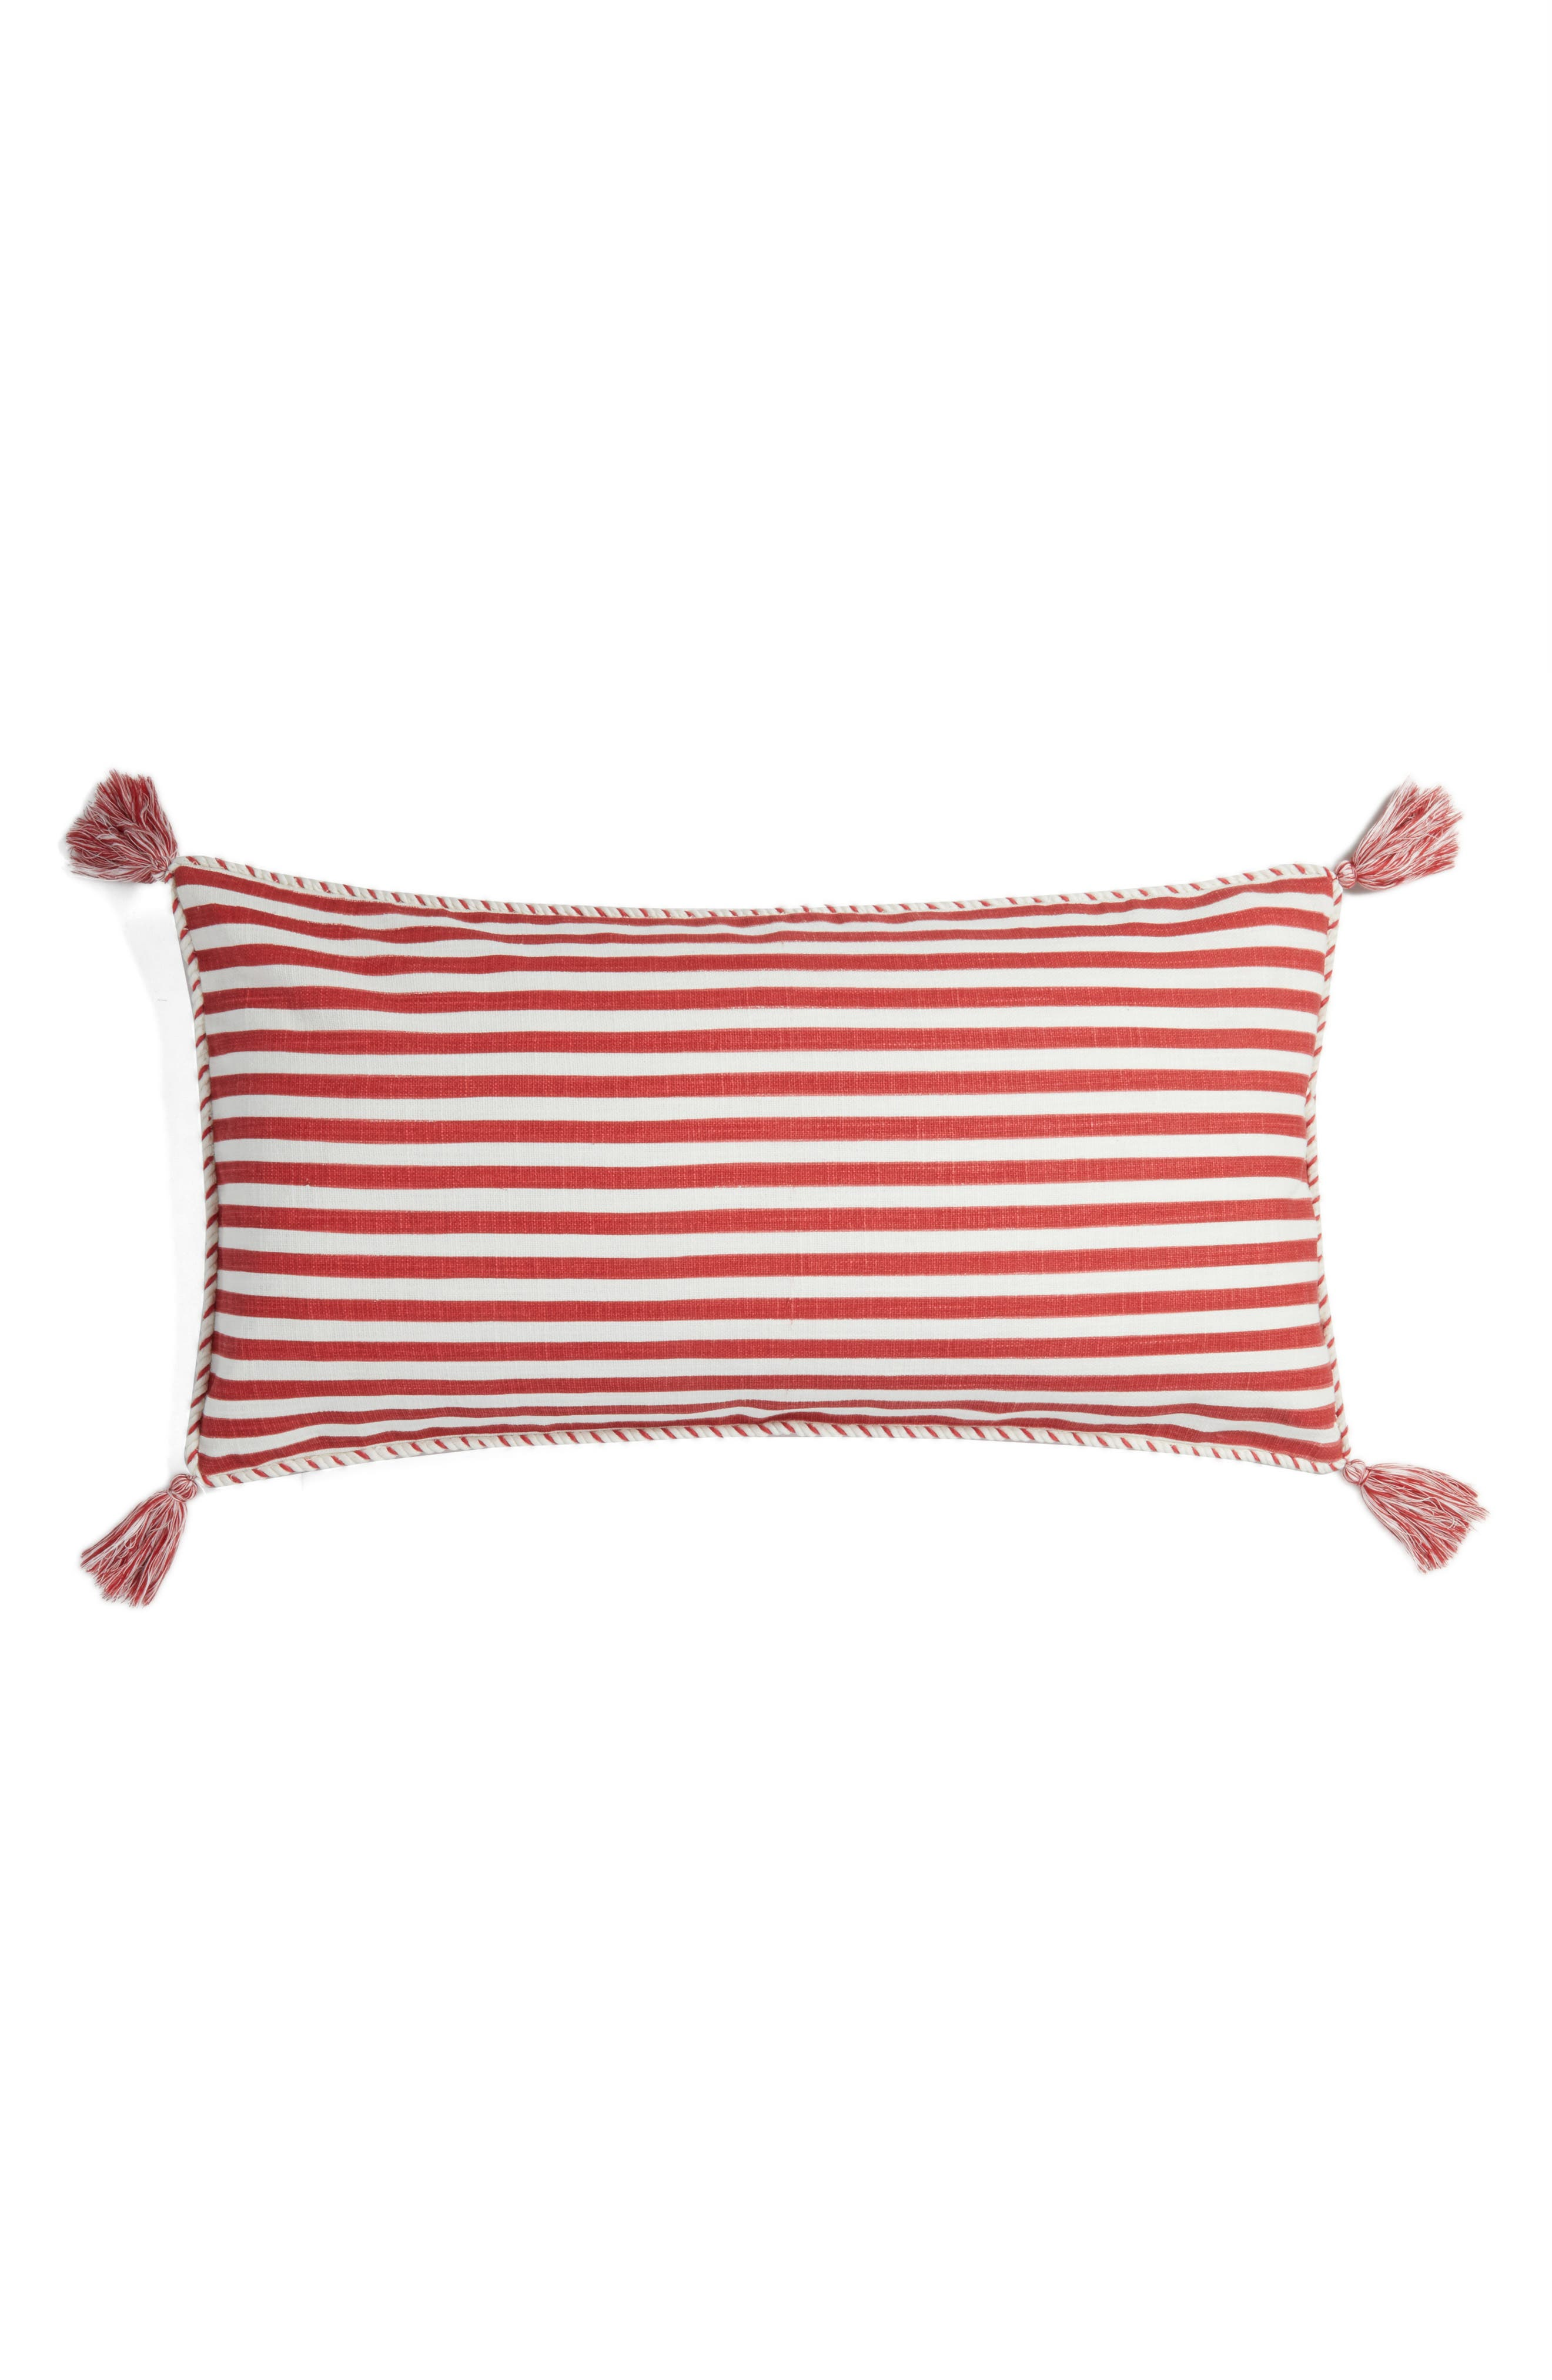 Nordstrom at Home Stripe Tassel Accent Pillow